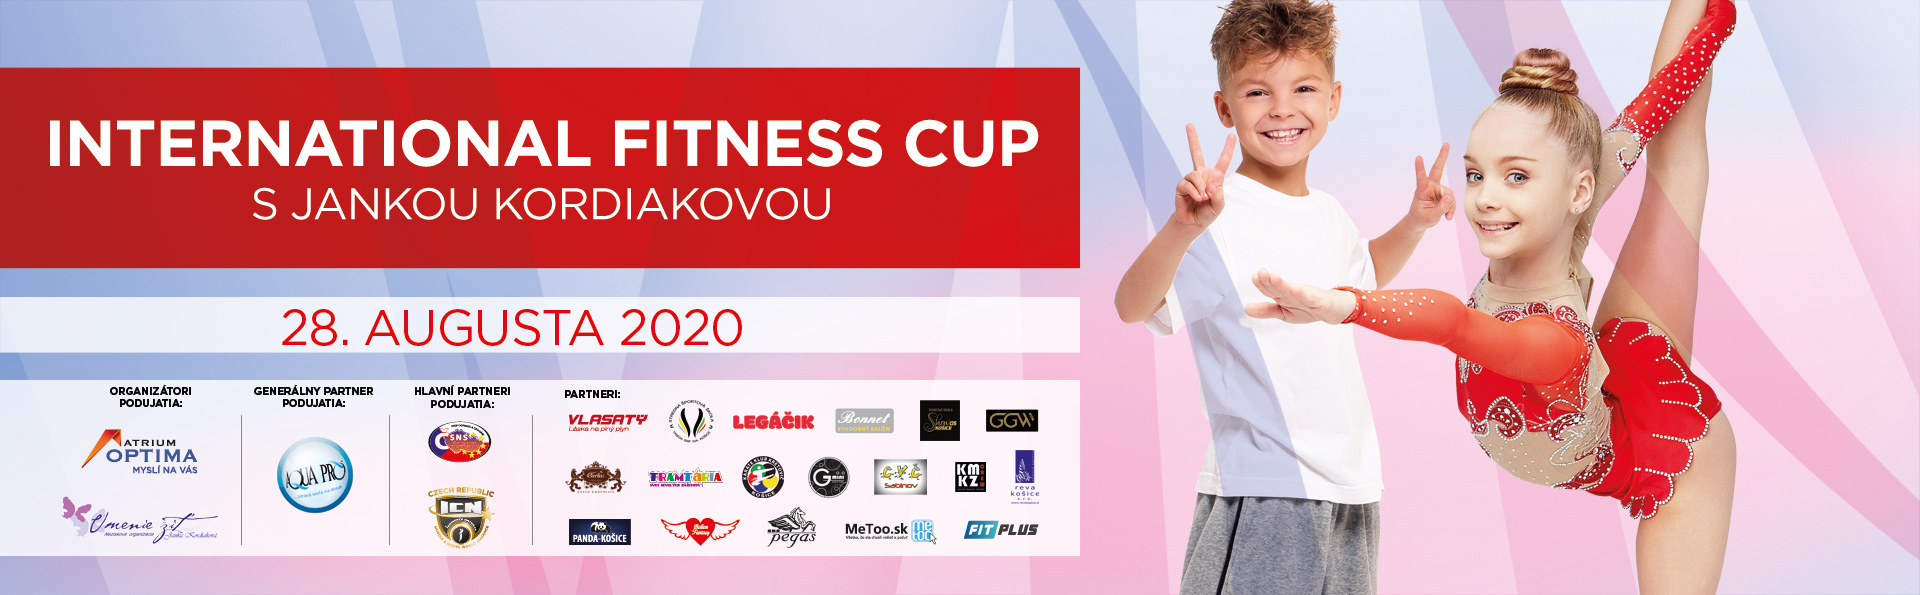 International fitness cup 2020